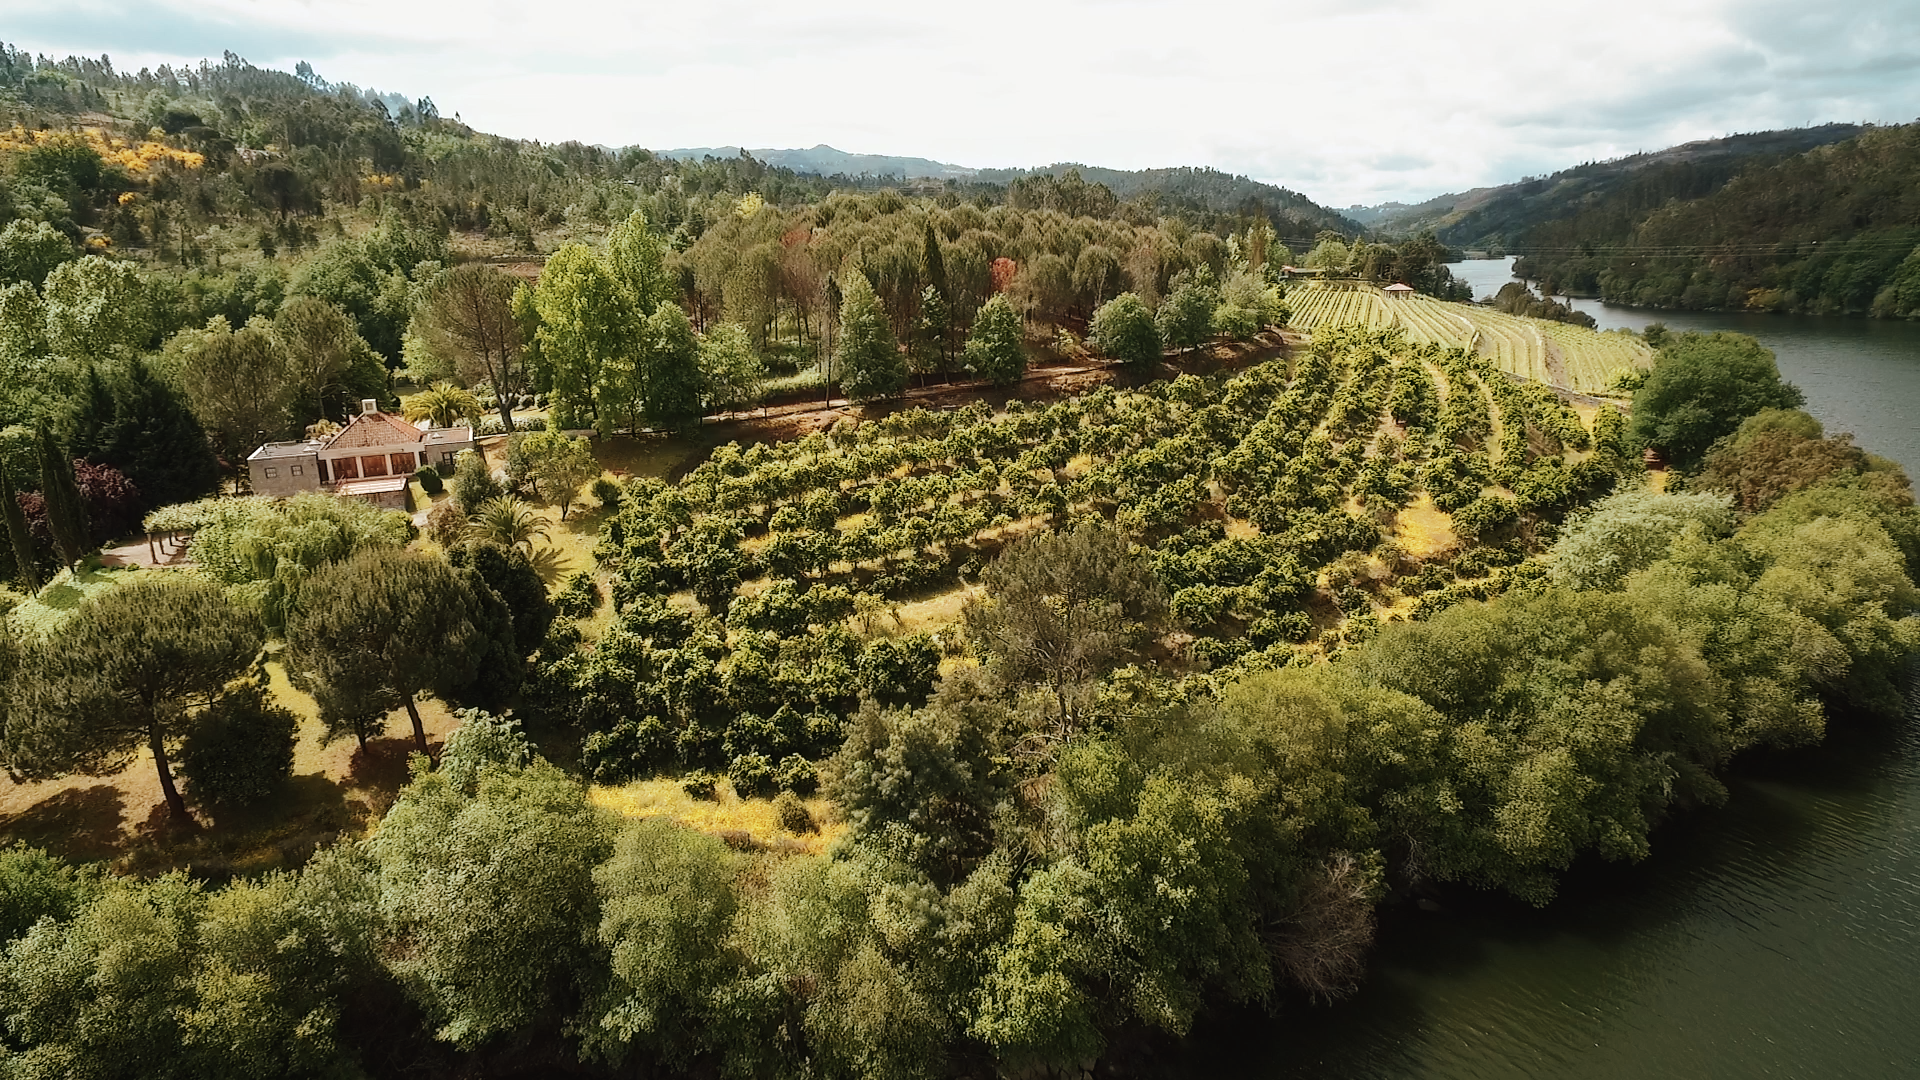 drone footage over Portuguese wine country